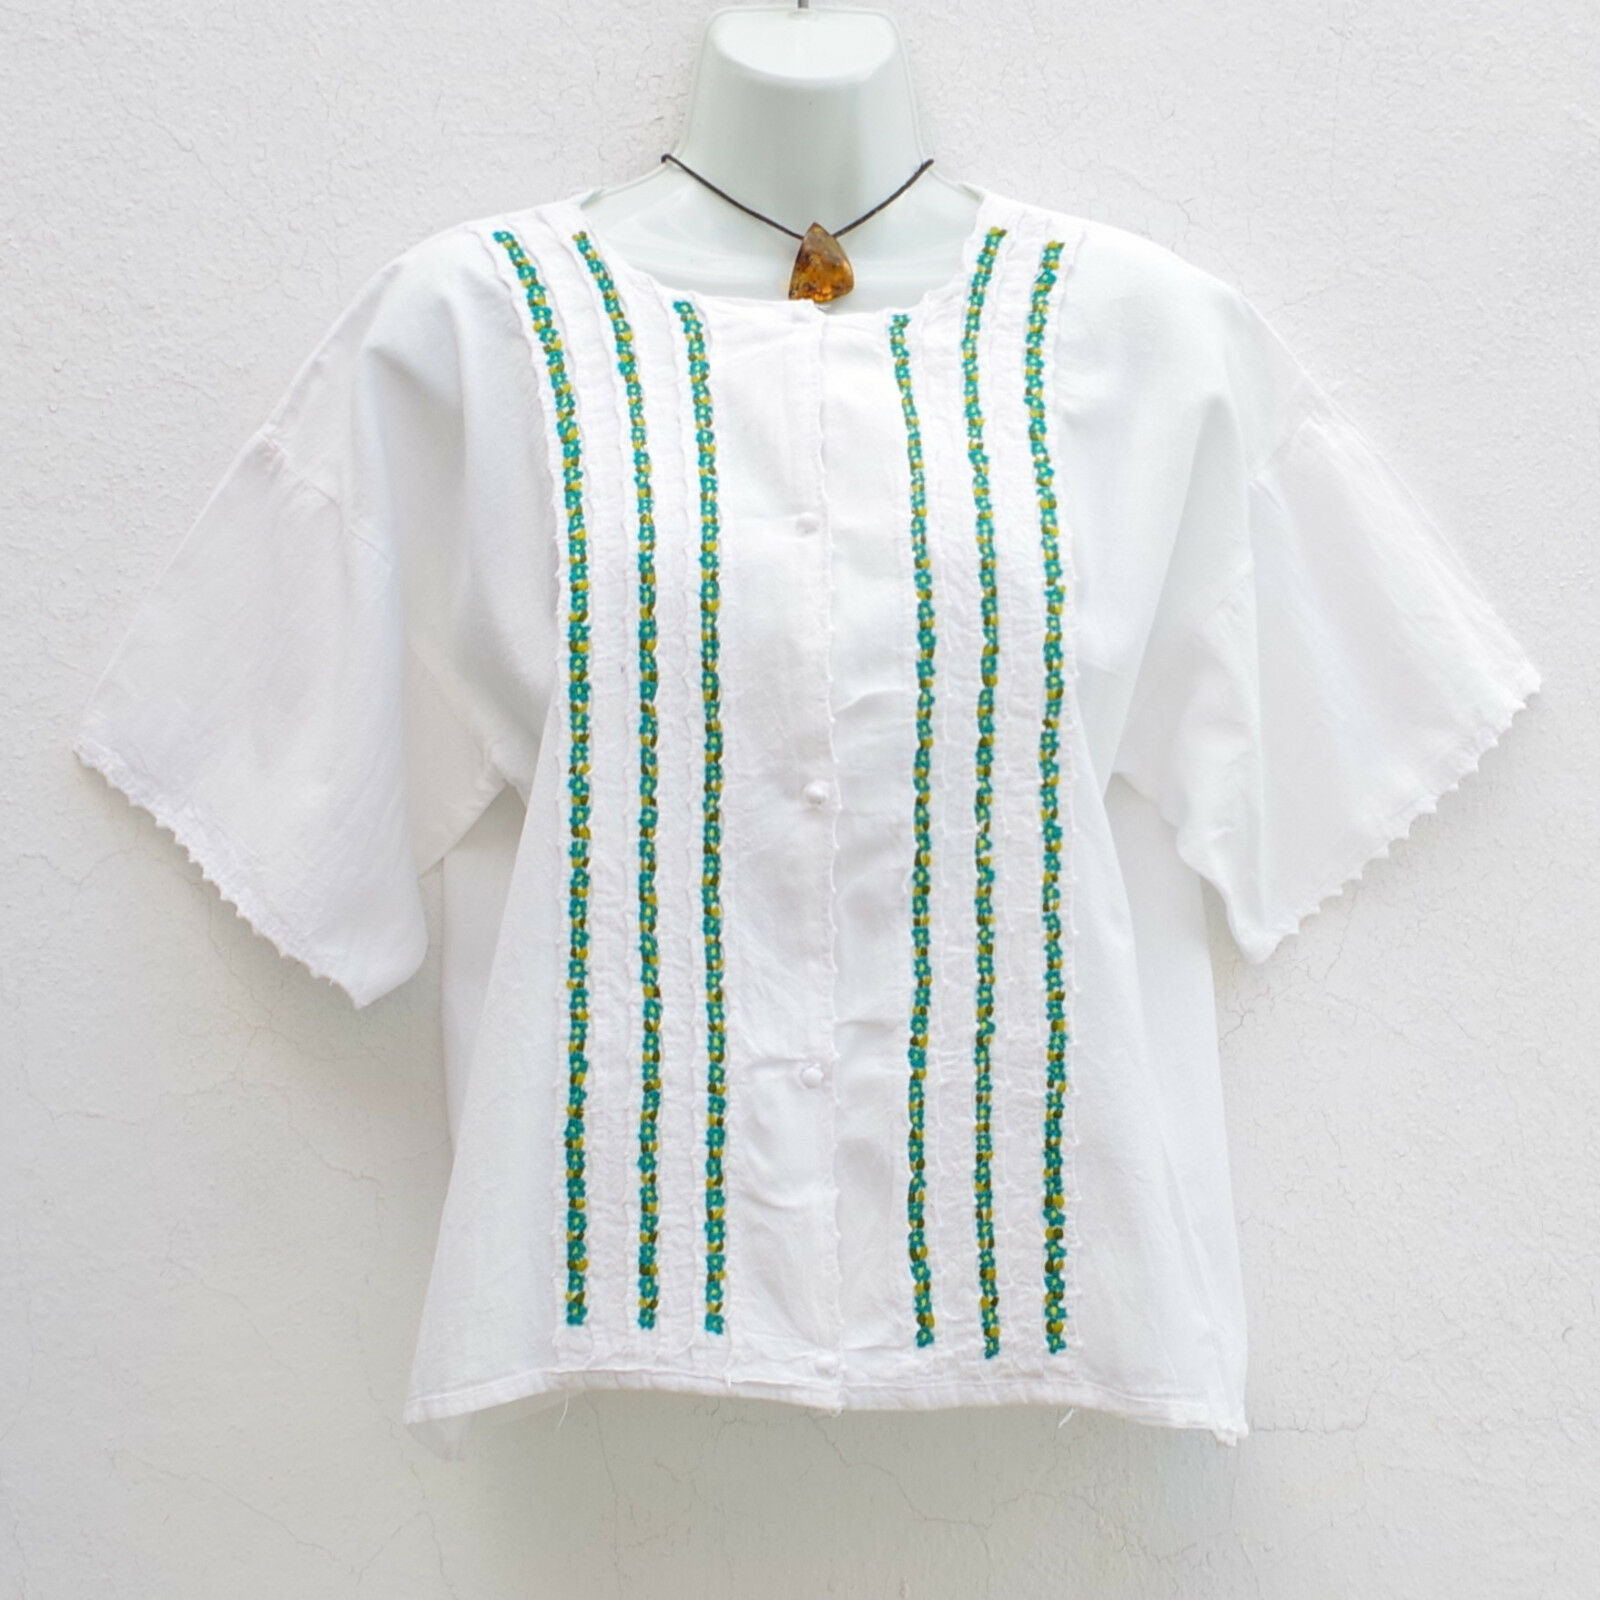 M L Filipina Stil Taste Blouse Huipil with Fine Embroidery from Mexico